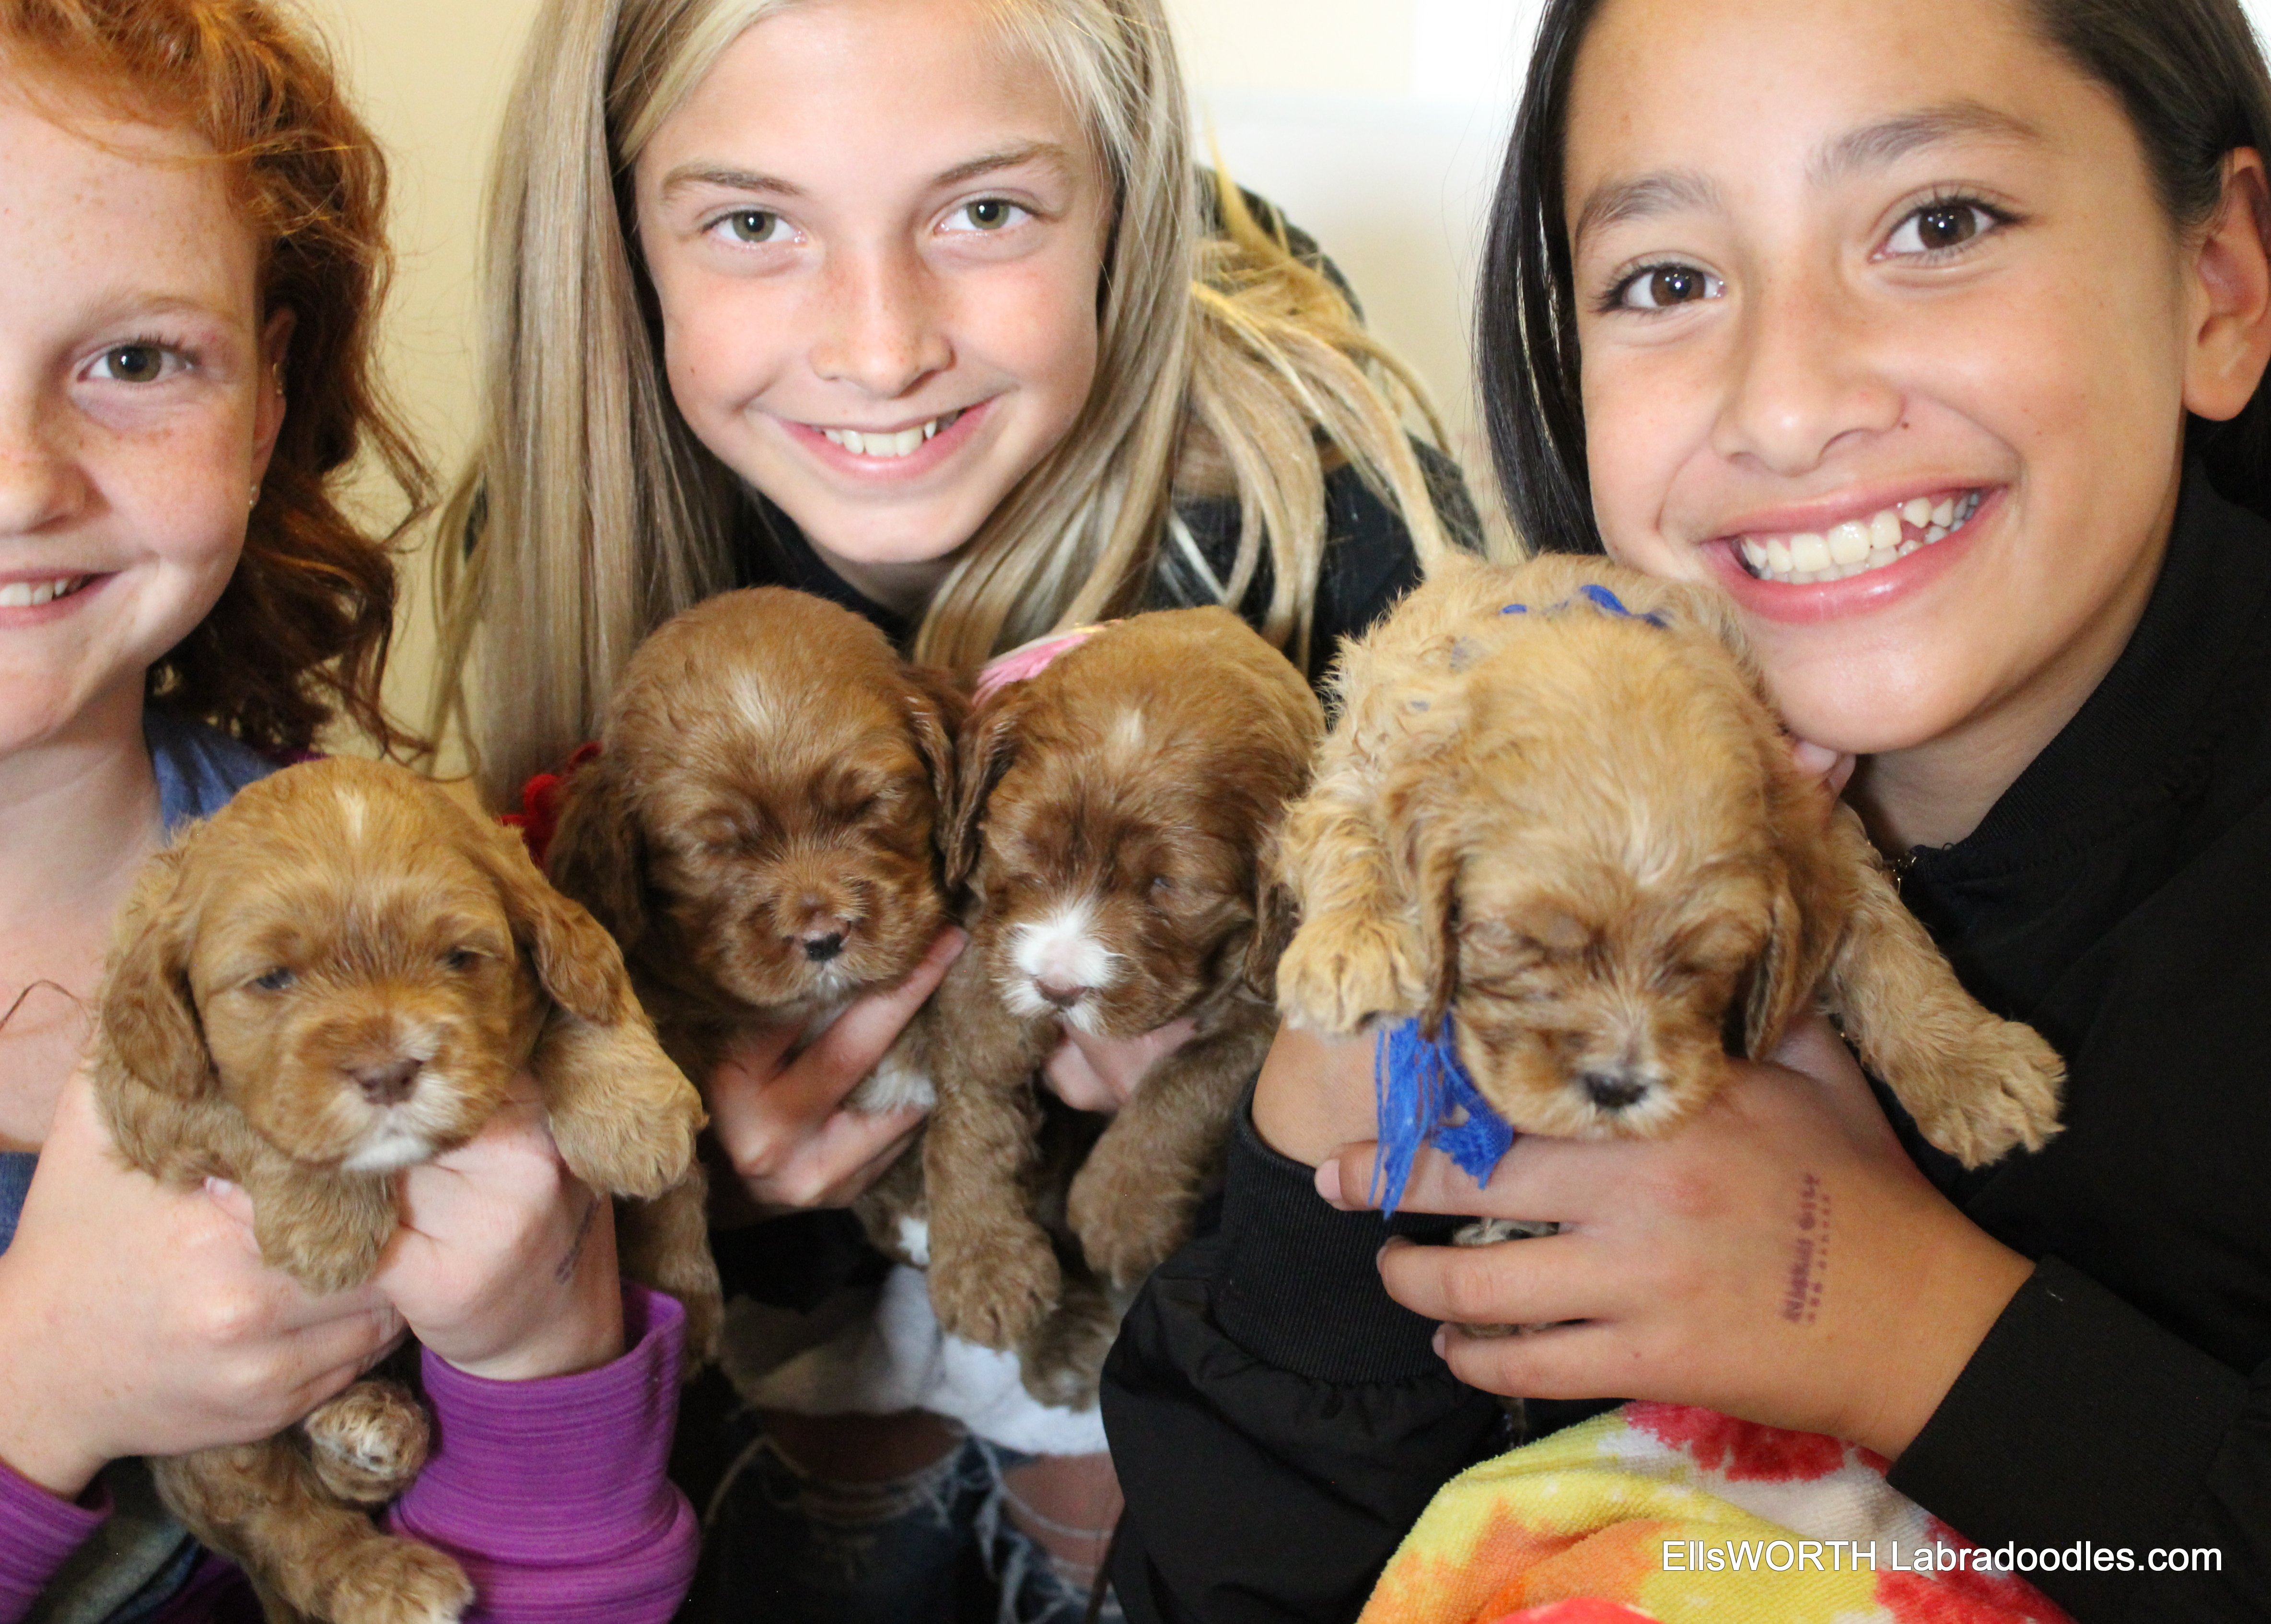 cutie-pie puppies and girls